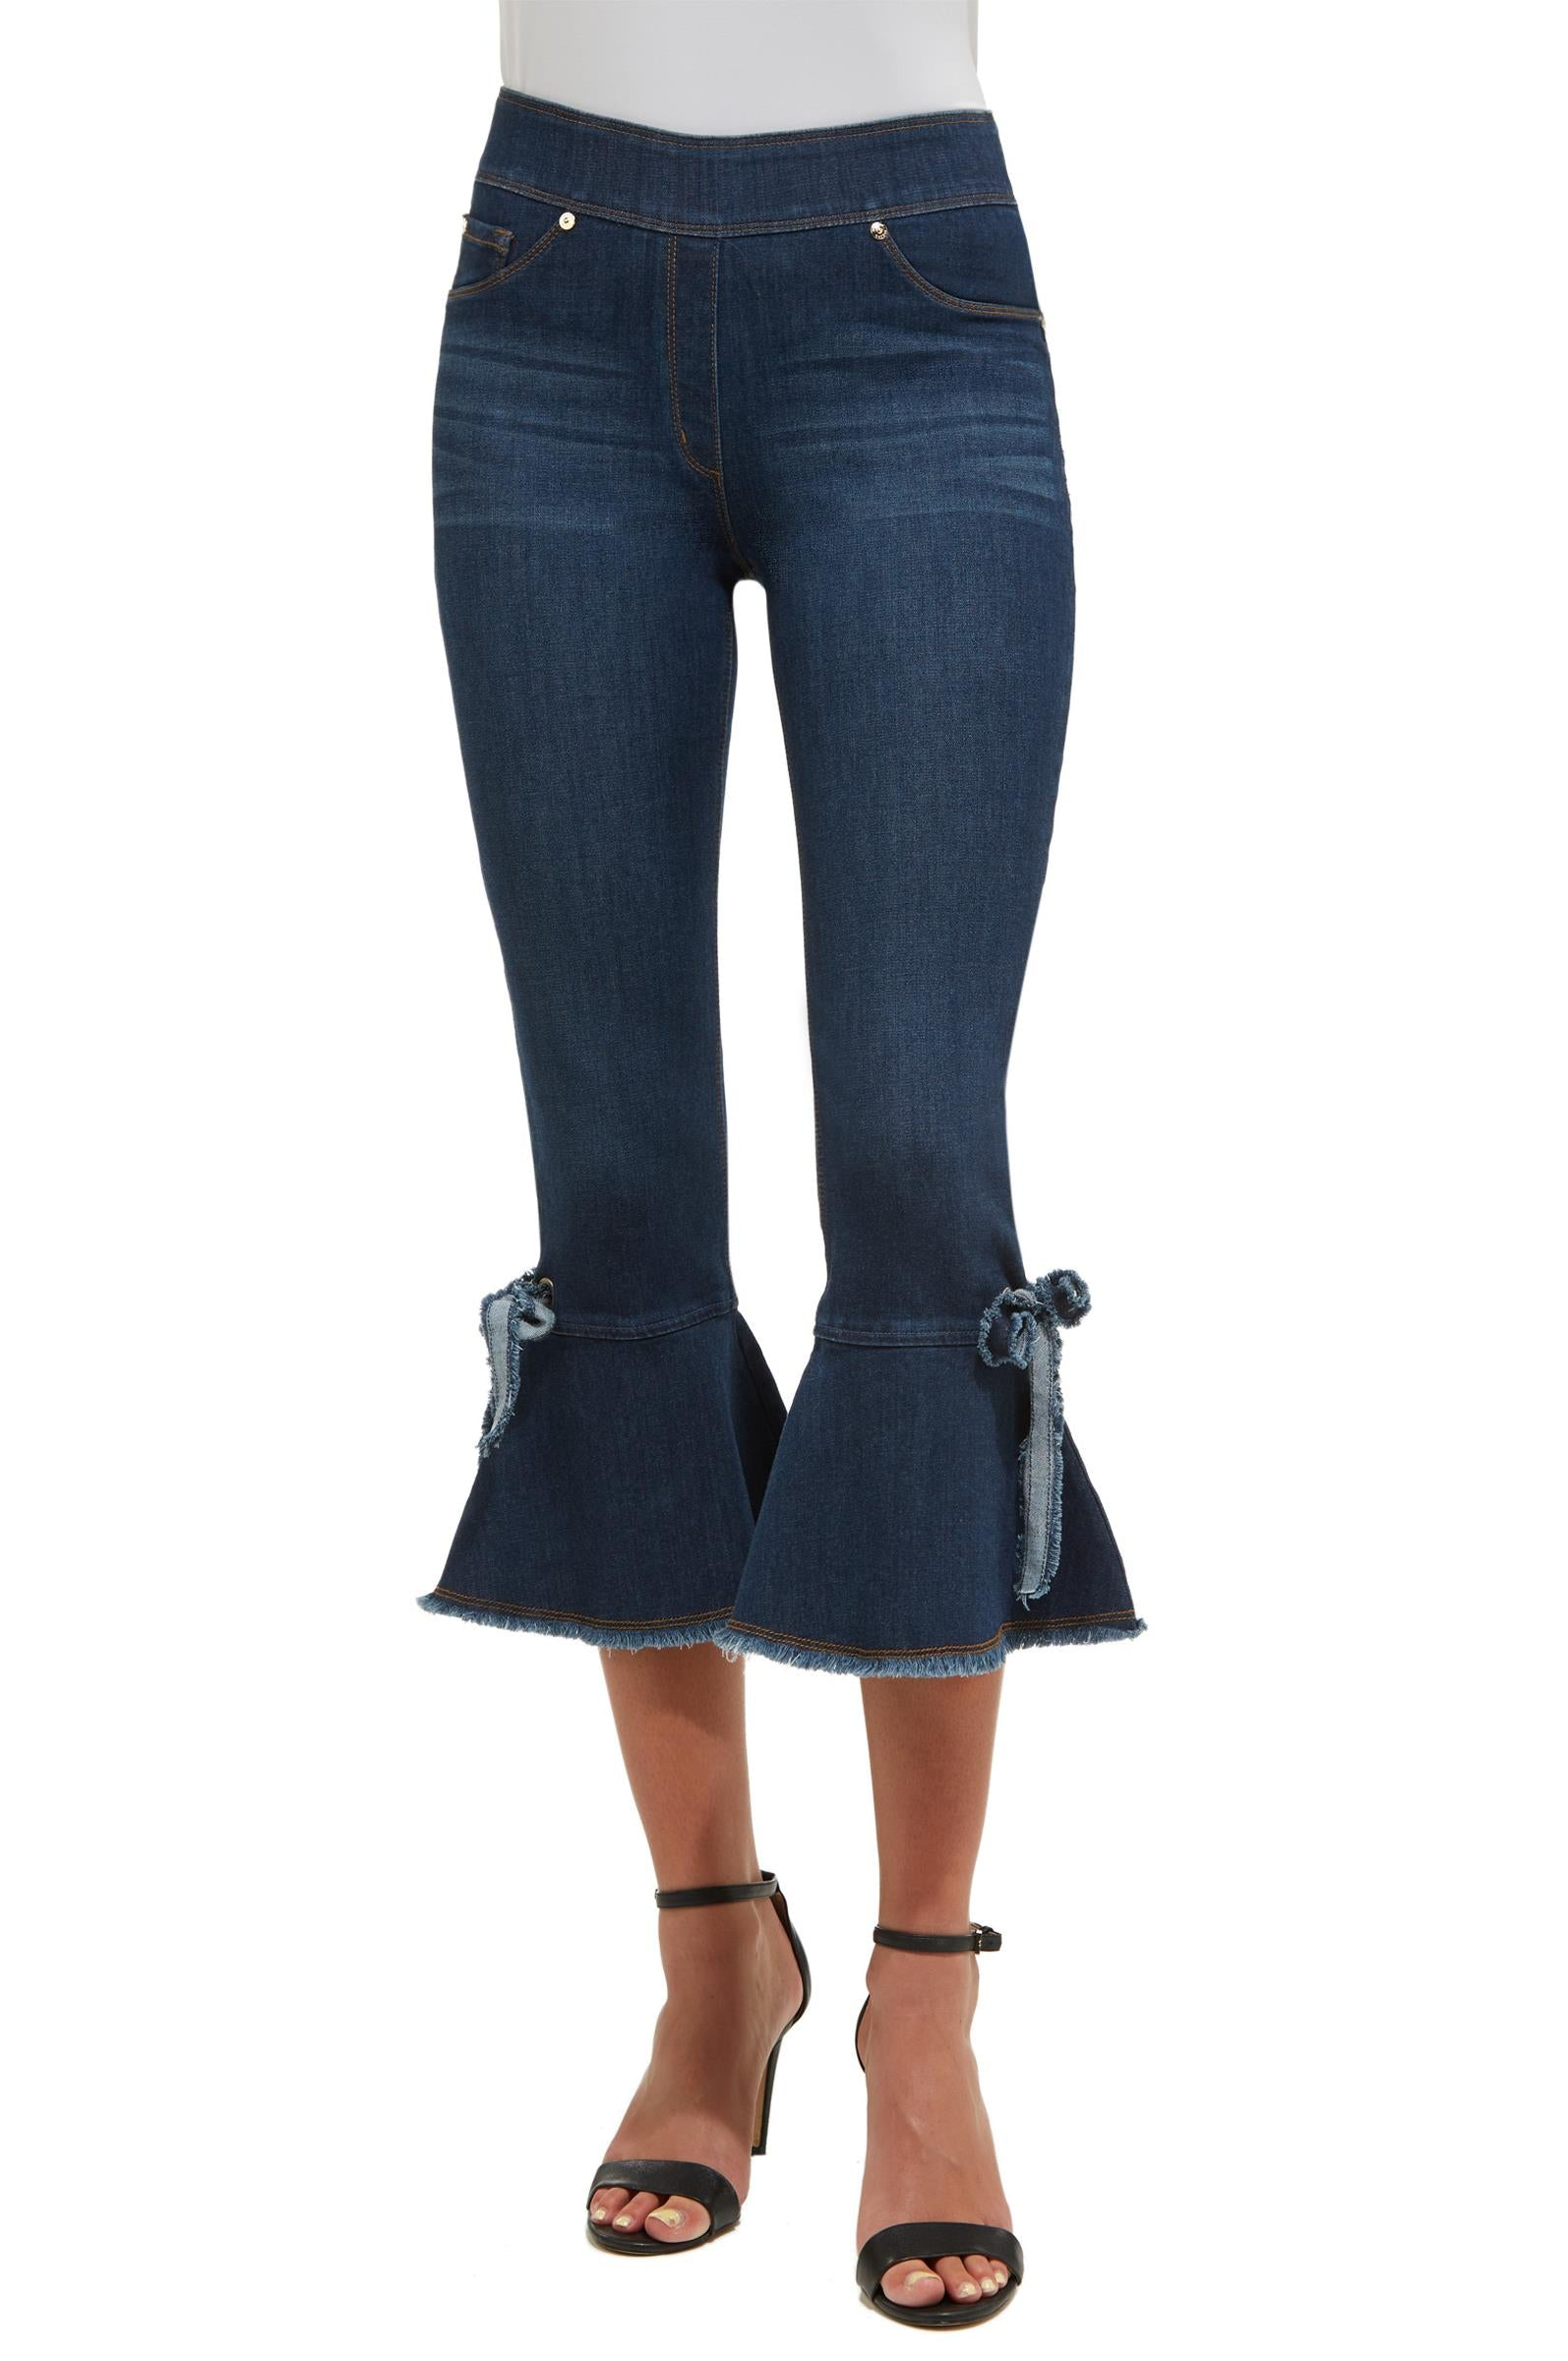 Luxe denim cropped jeans